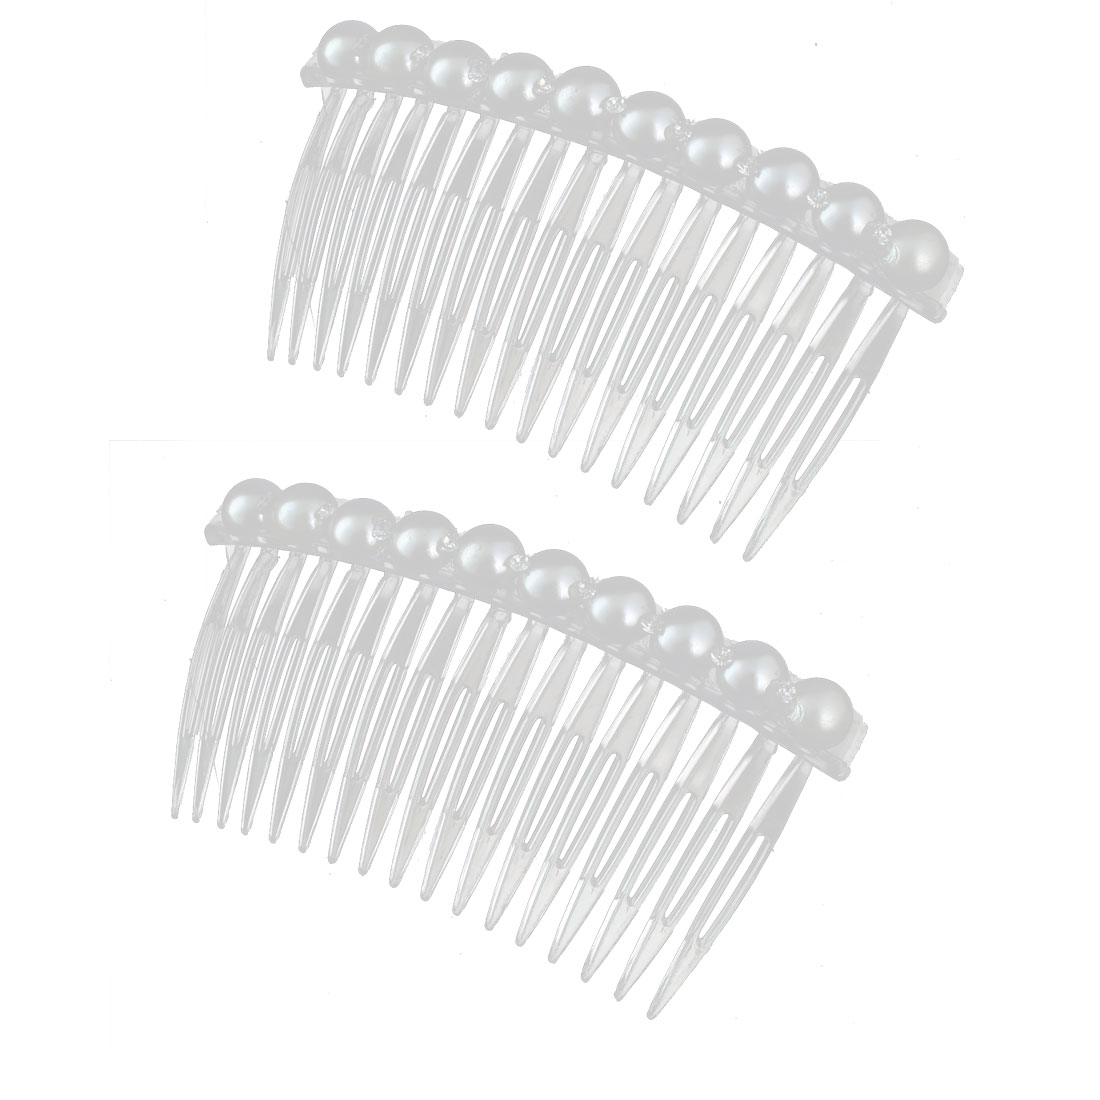 Lady Imitation Pearl Rhinestone Decor 17 Teeth Hair Clip Comb Hairclip White 2pcs